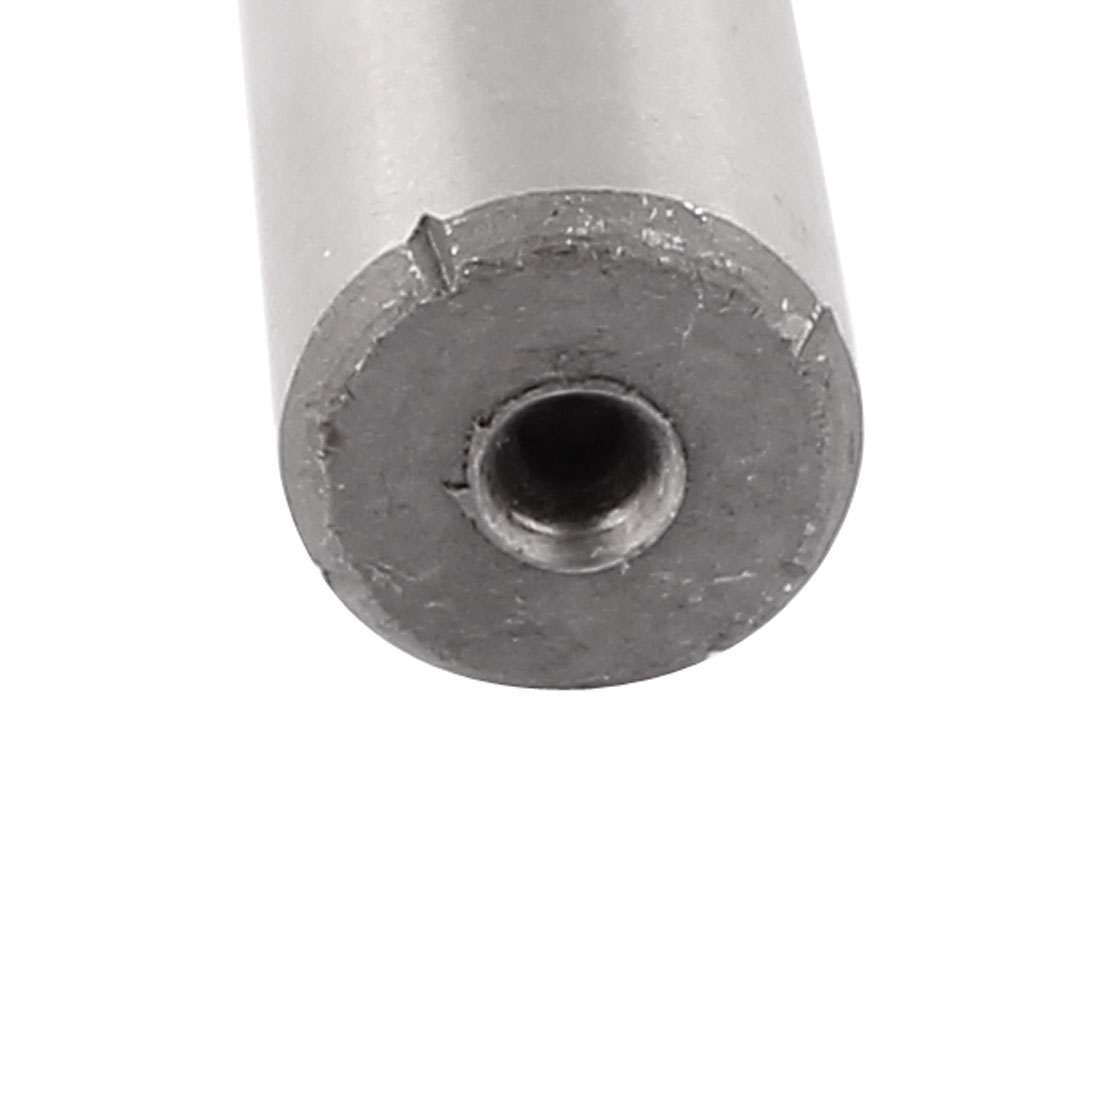 """Unique Bargains 1/2"""" Cutting Dia Straight Shank 3 Flutes End Mills Cutter - image 2 of 4"""